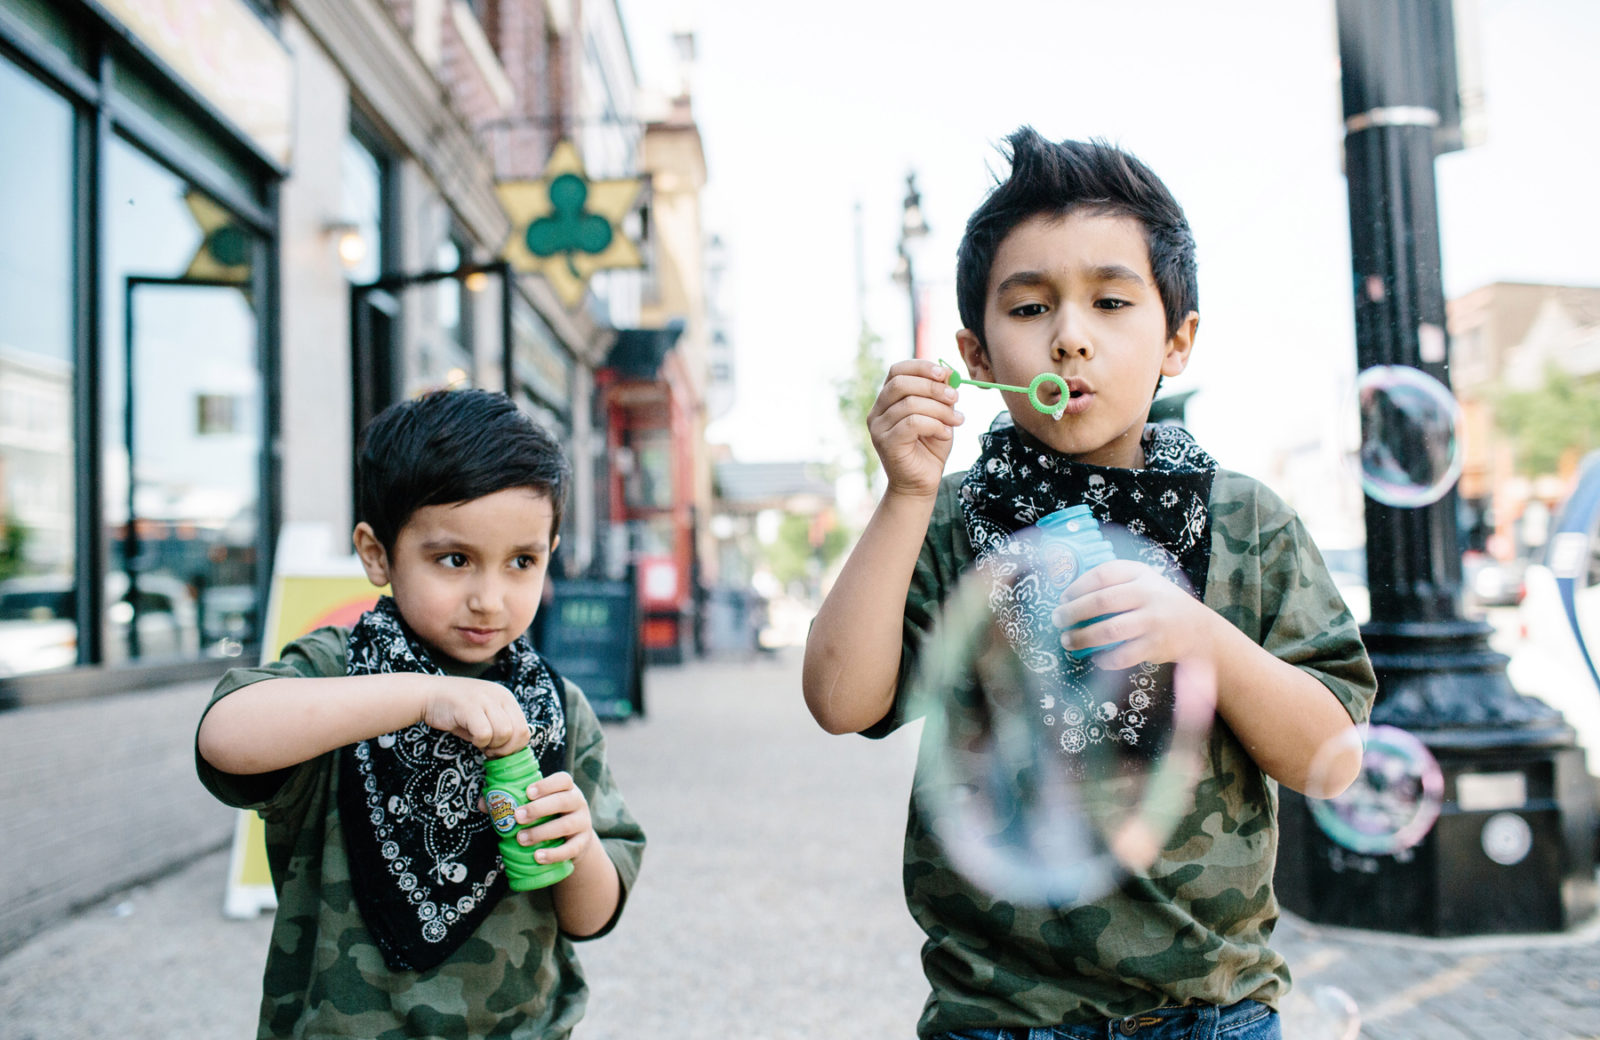 Apollo Social H Street Kids Blowing Bubbles